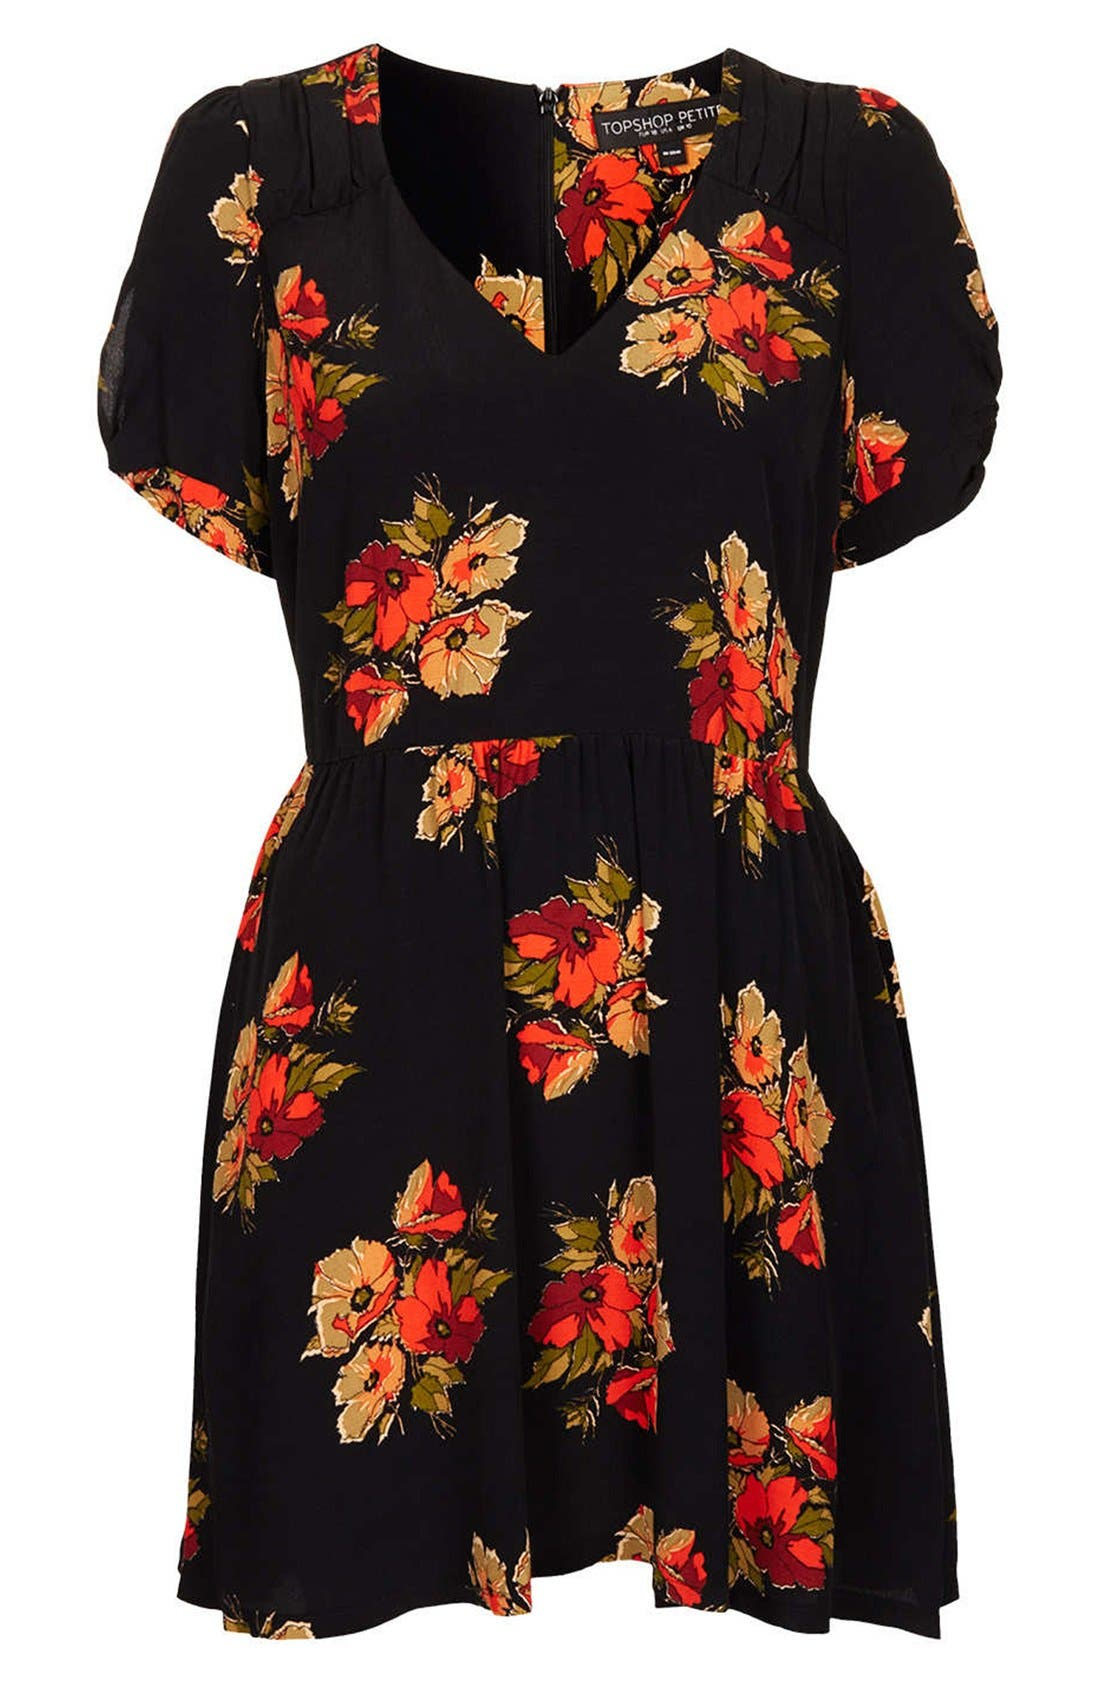 Alternate Image 1 Selected - Topshop 'Autumn Floral' Tea Dress (Petite)